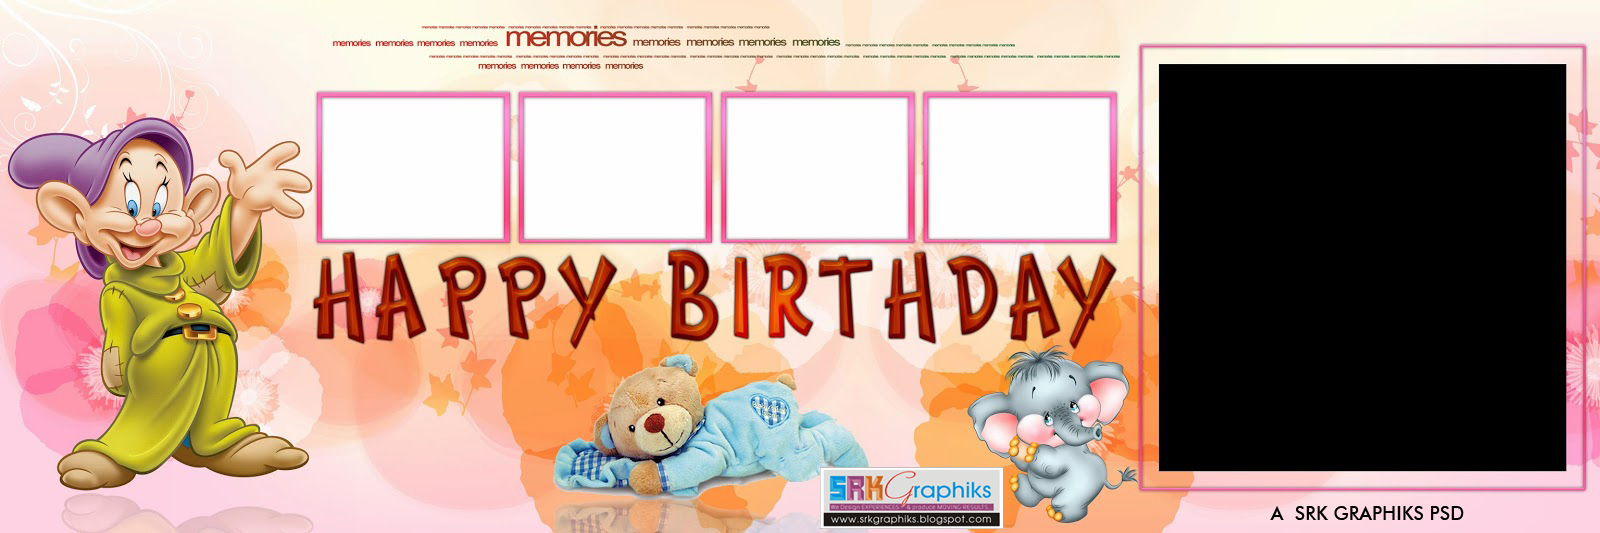 birthday photo album design templates ; photo-album-design-background-birthday-13